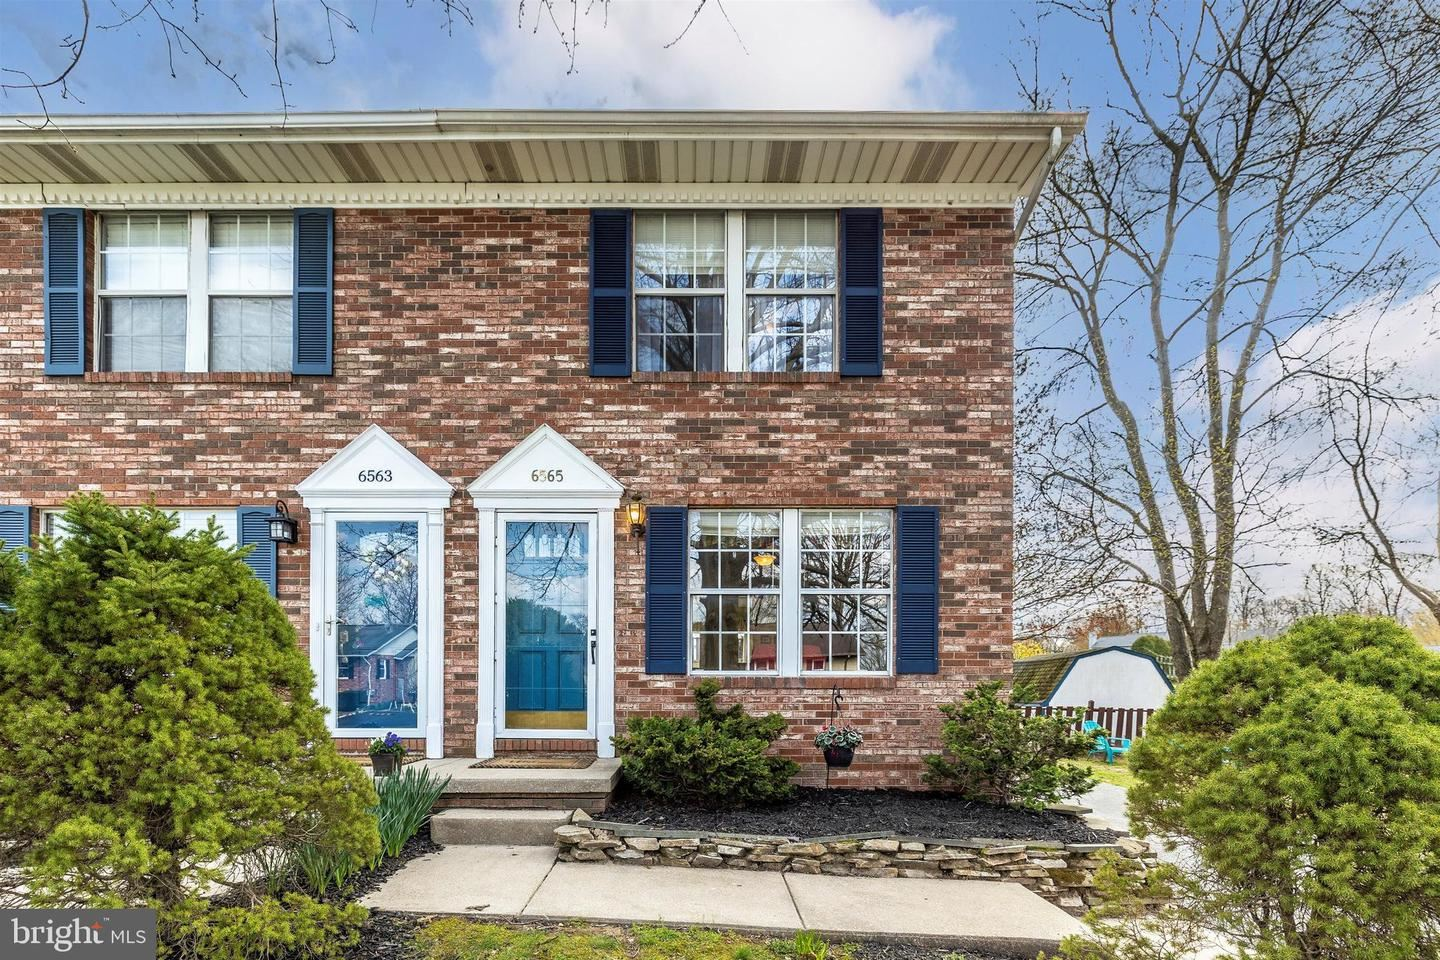 6565 MACBETH WAY, Eldersburg, MD 21784 - MLS#: MDCR203268